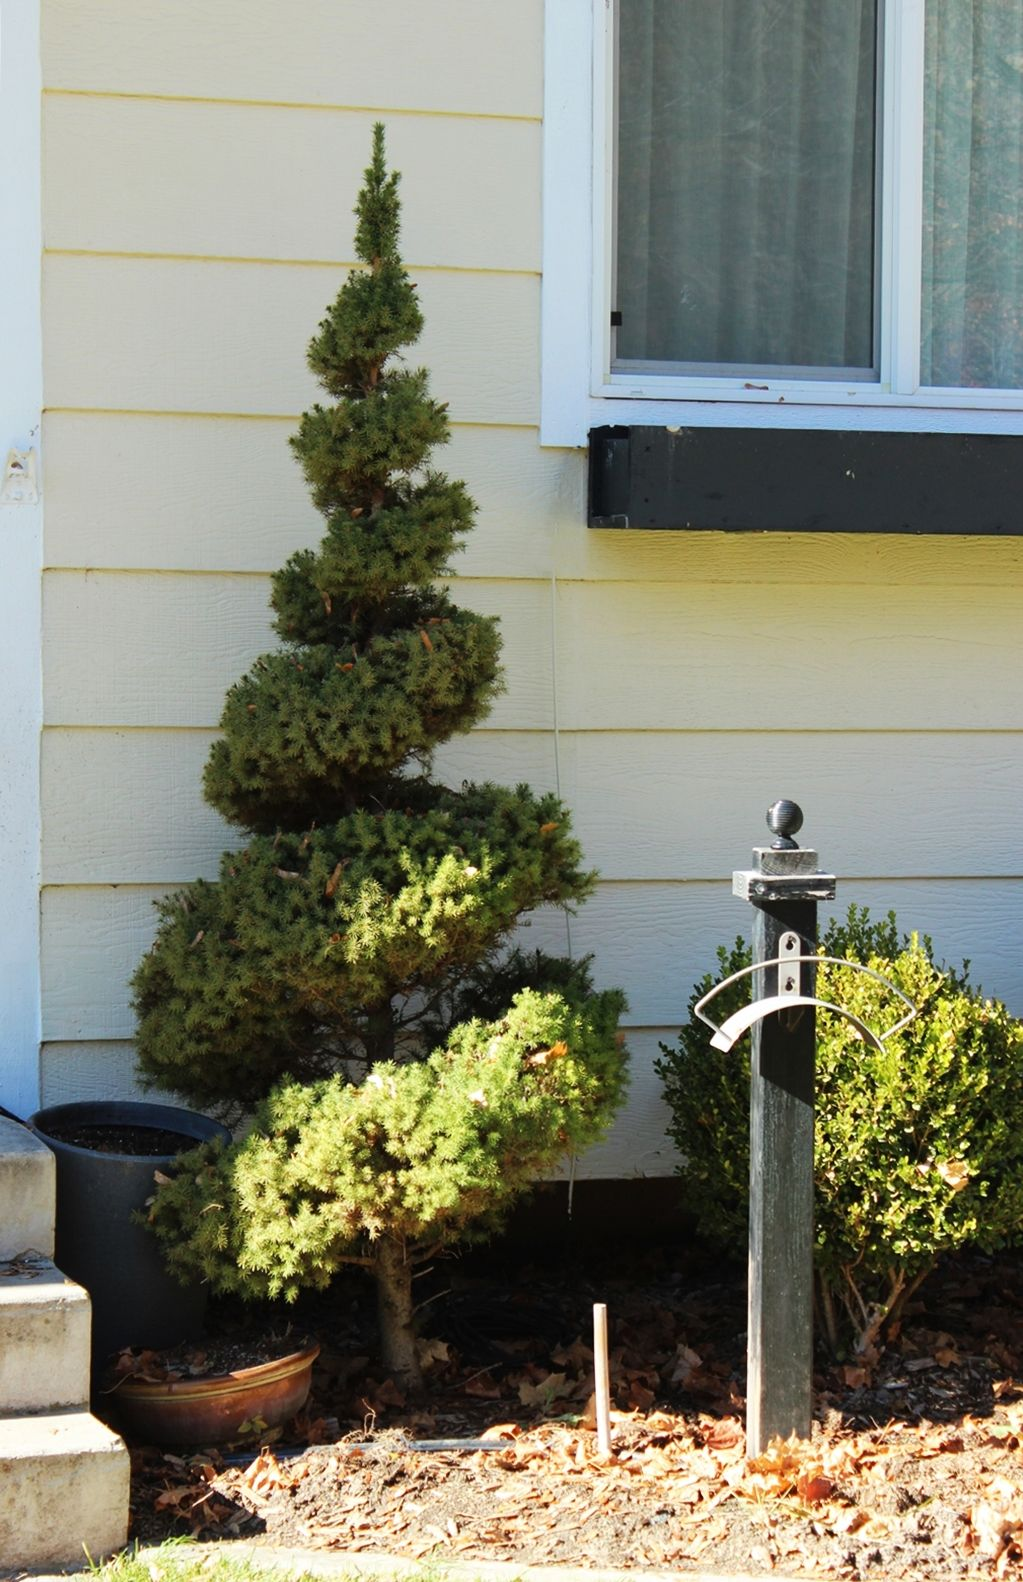 Curb Appeal - trimming out an evergreen tree